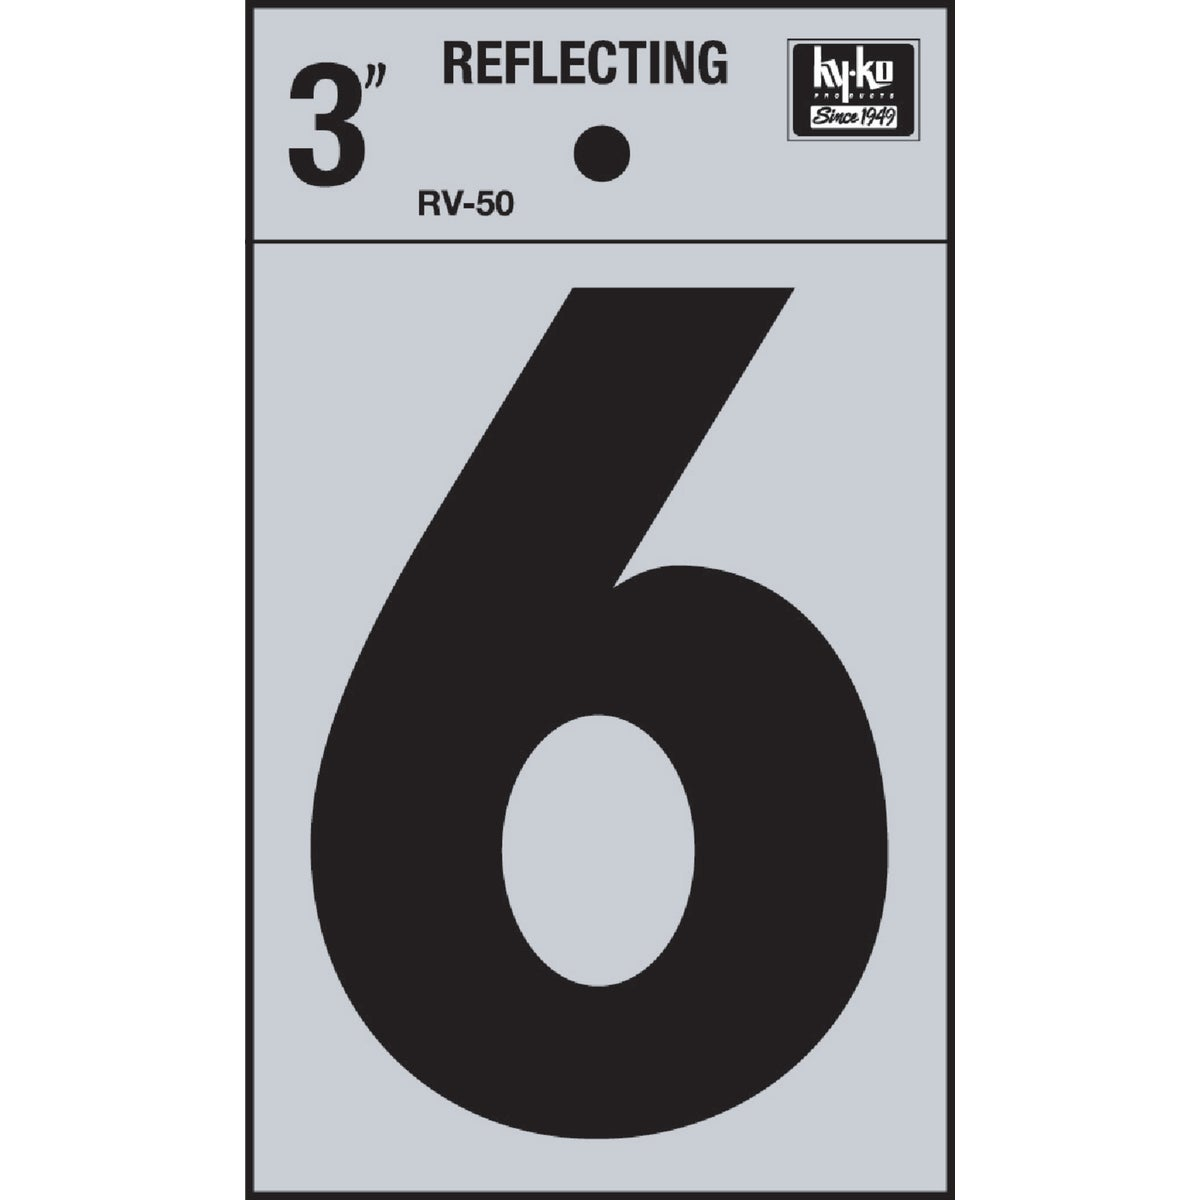 "3"" REFLECT NUMBER 6 - RV-50-6 by Hy Ko Prods Co"